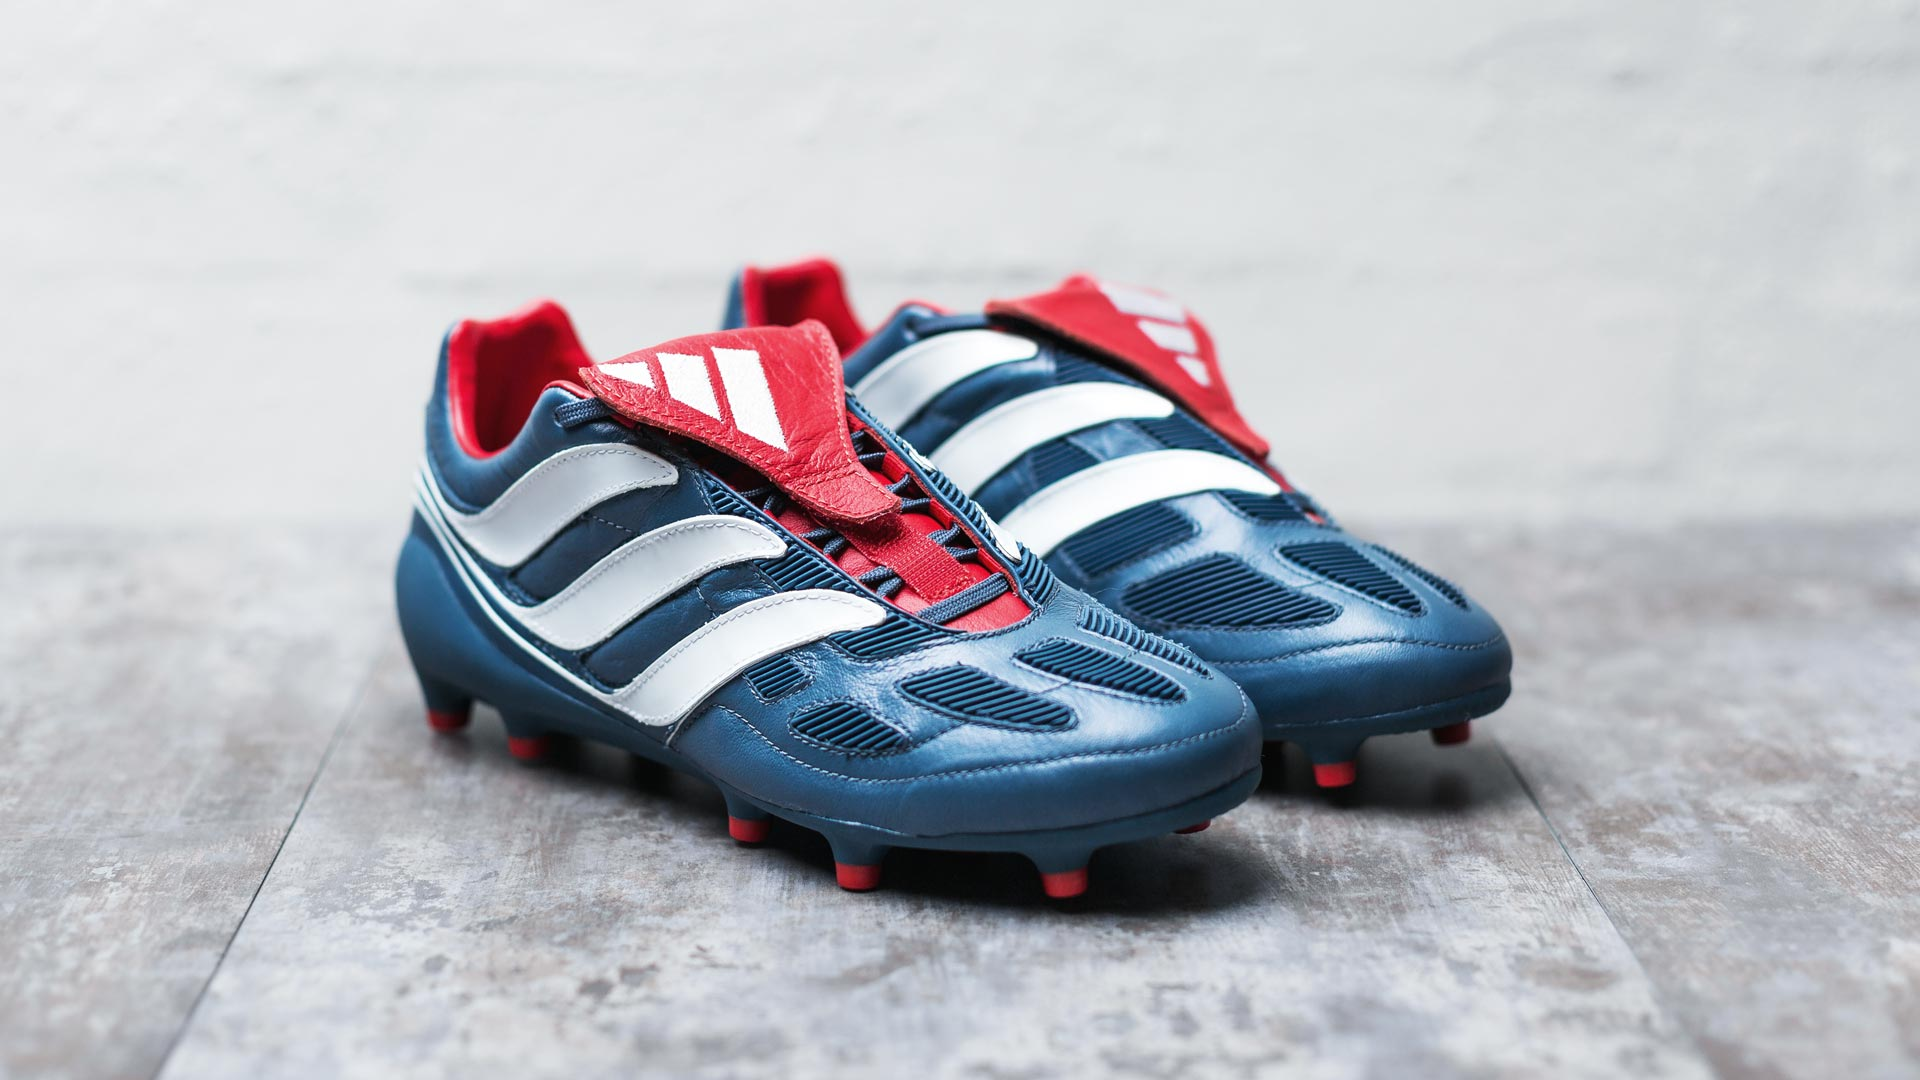 best sneakers 124d1 97789 Relive the early 2000s with the adidas Predator Precision remake. 05.09.2017